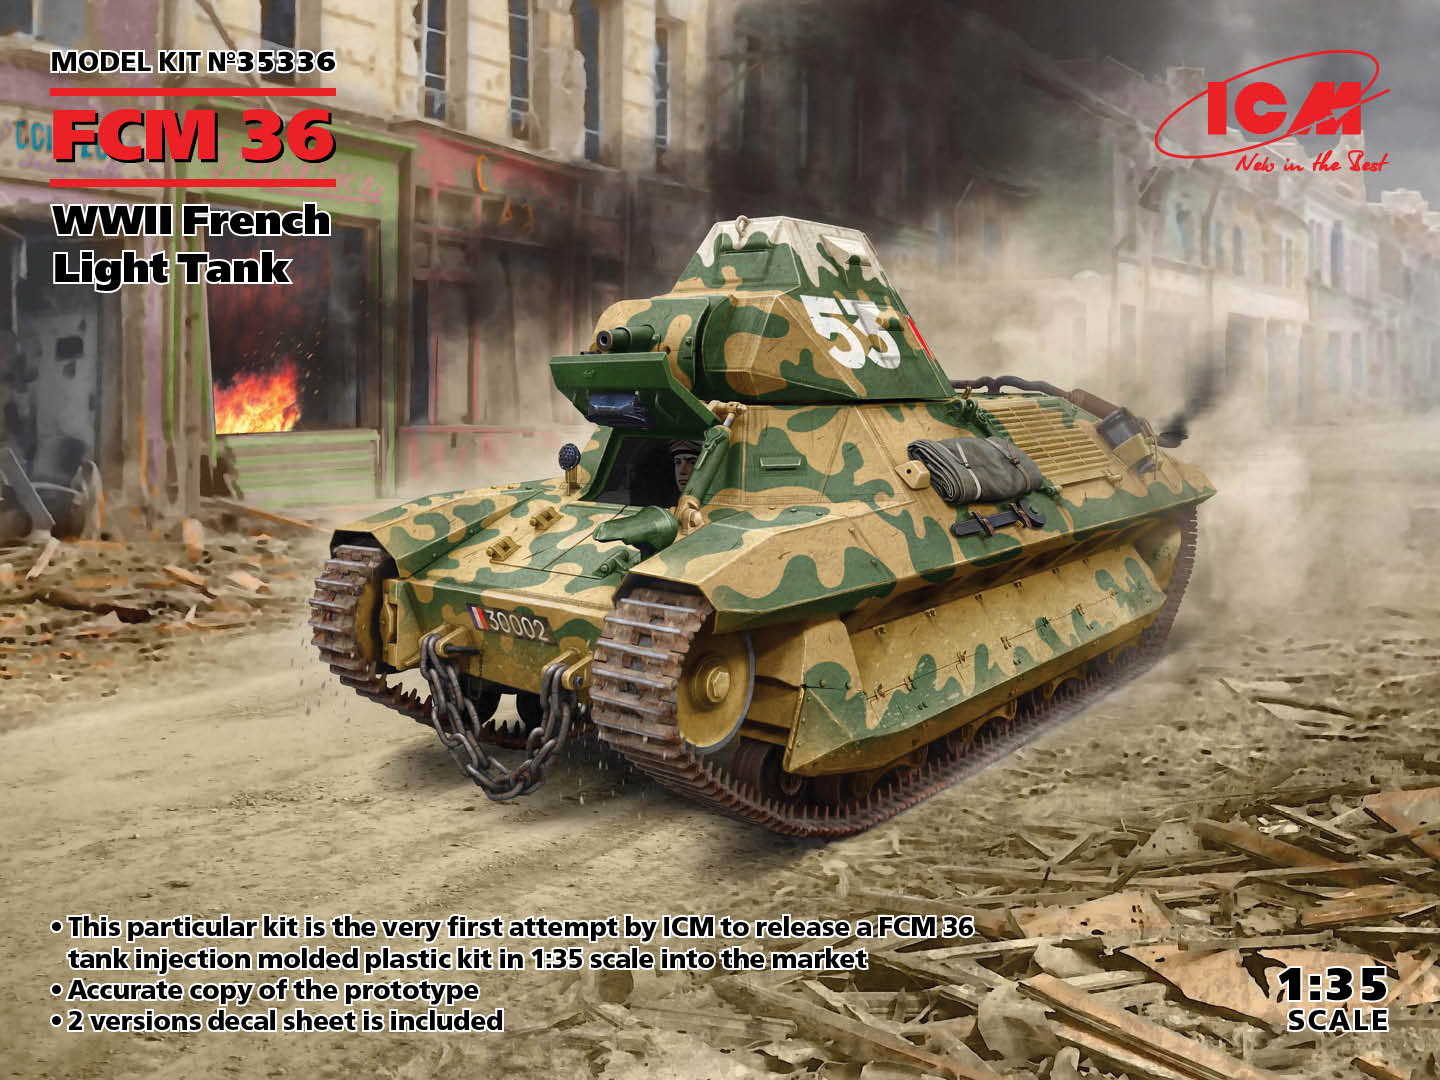 ICM FCM 36, WWII French Light Tank (100% new molds)